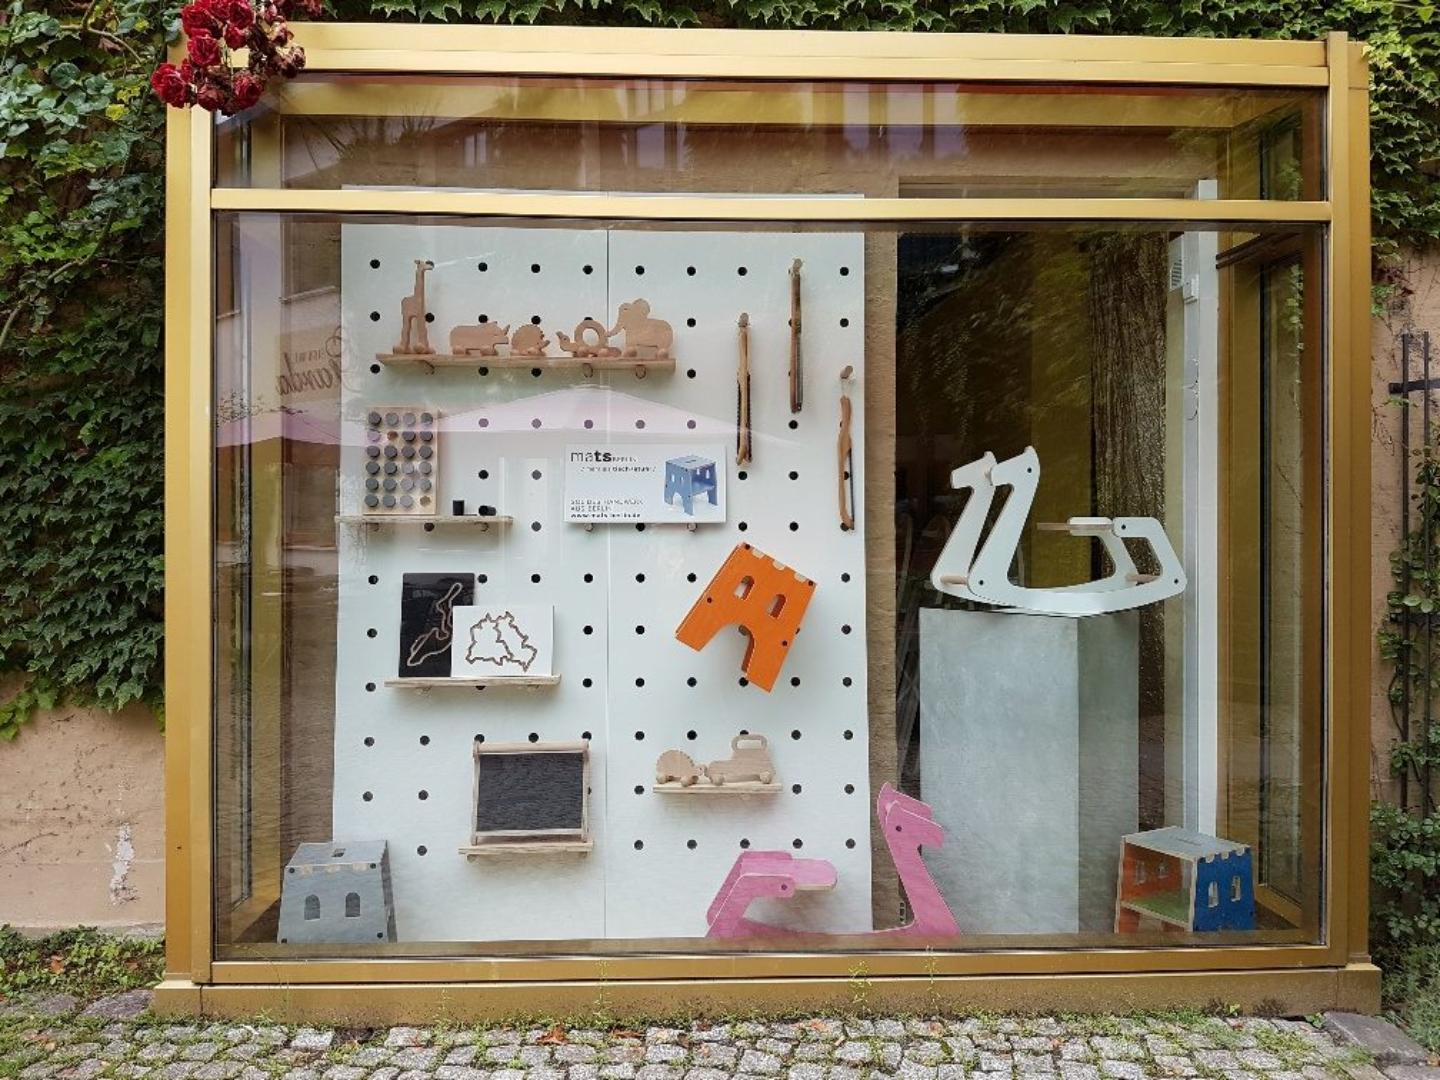 Picture 3 of Large framed shop window as advertising space in Berlin-Mitte